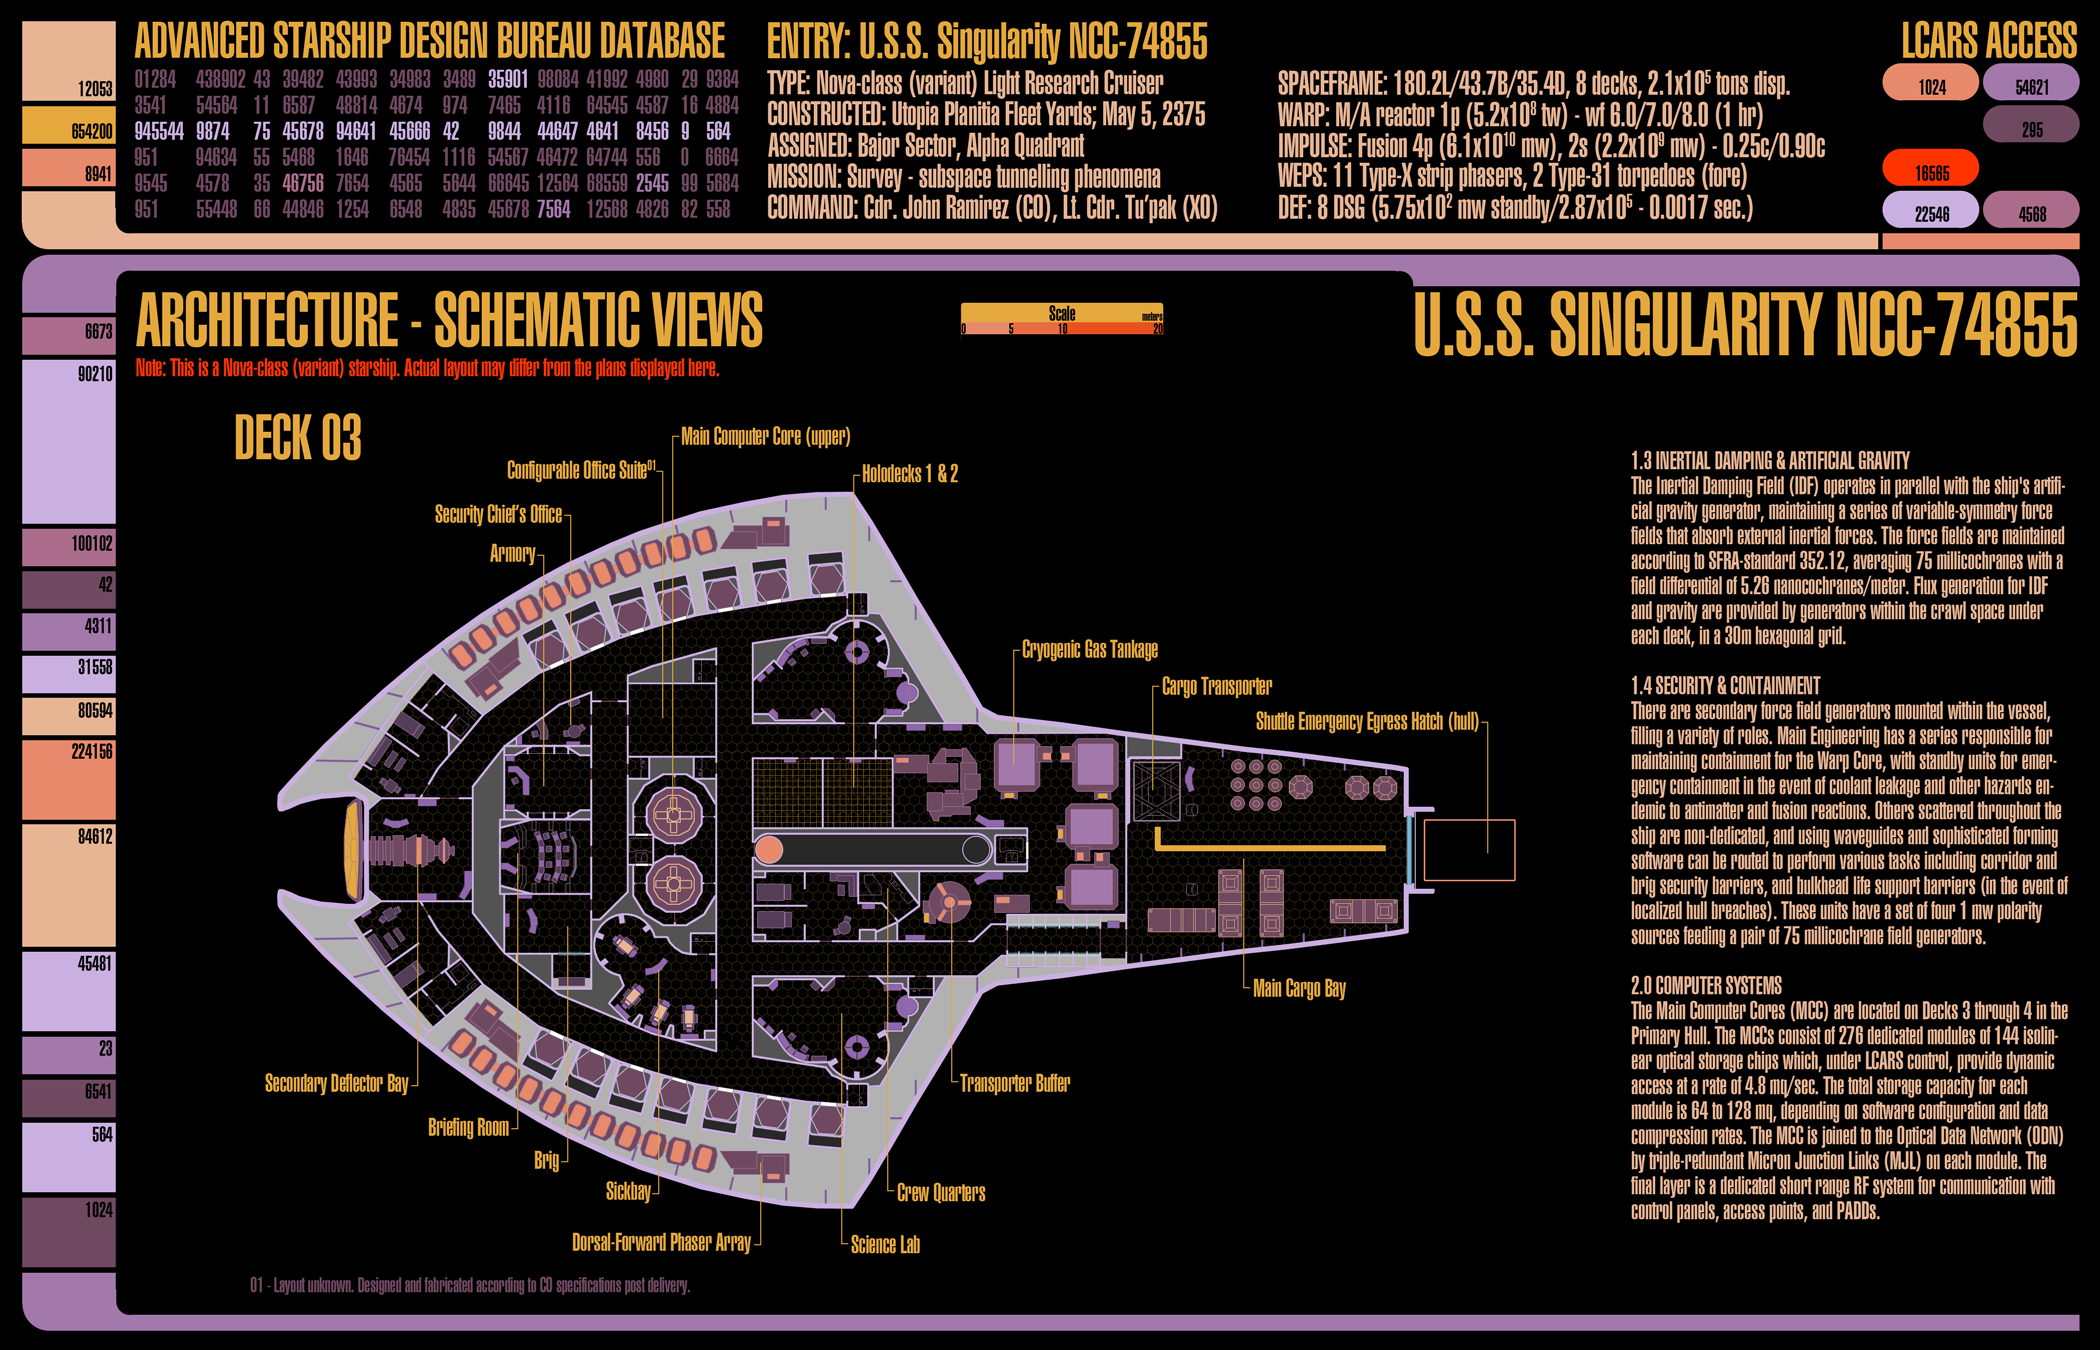 U.S.S. Singularity (NCC-74855) - deckplans for an upcoming Star Trek (TNG-era) game I'll be running using GURPS. This is deck 3.